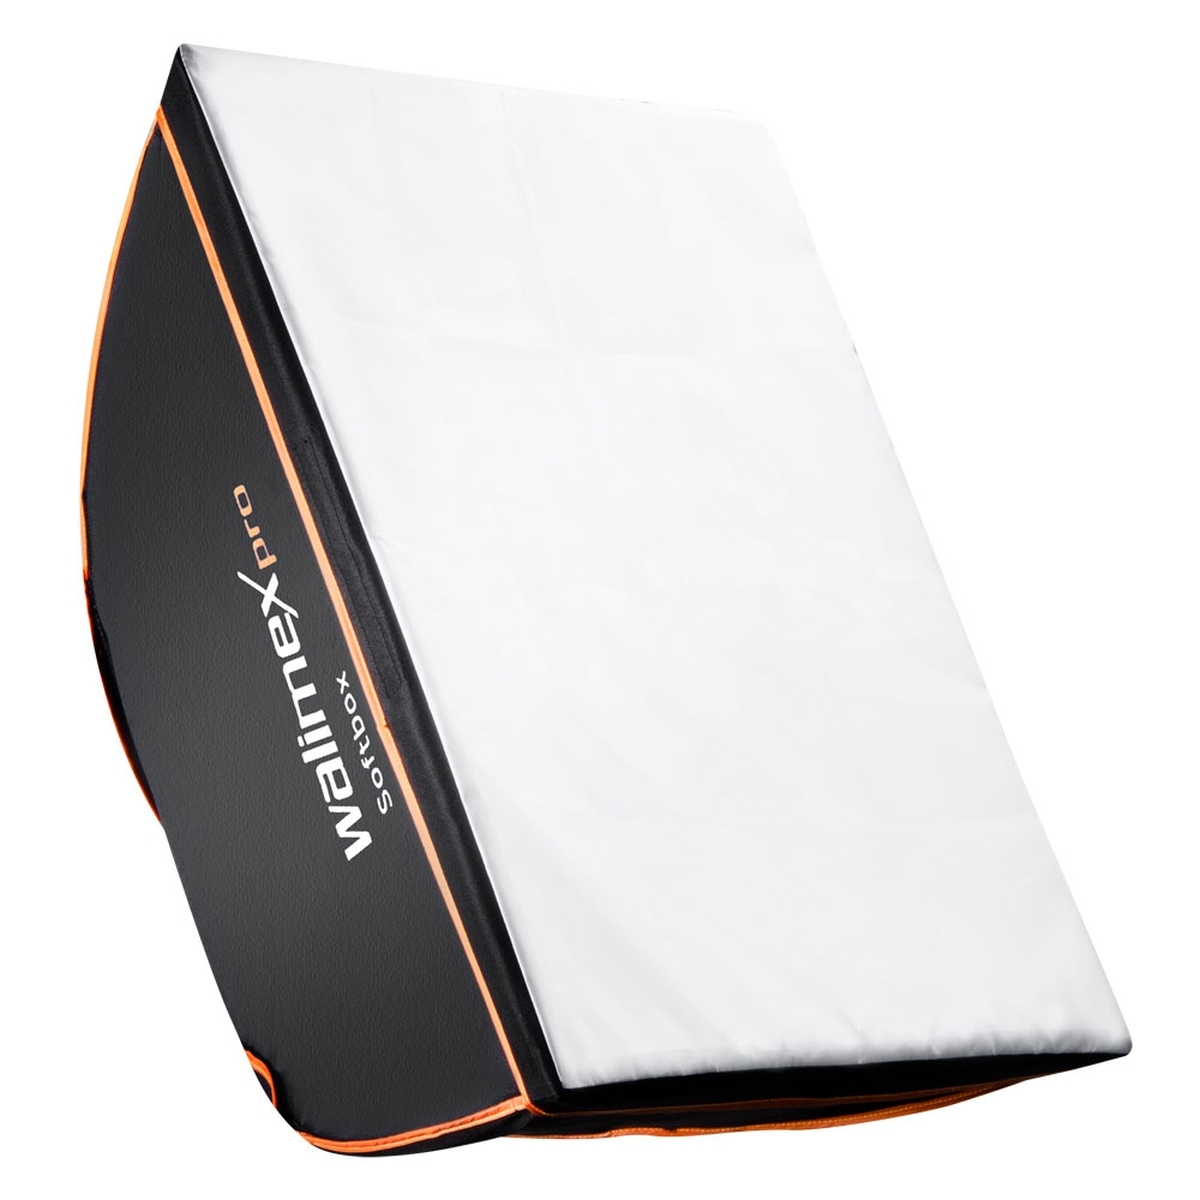 Walimex pro Softbox OL 60x90cm Electra Small